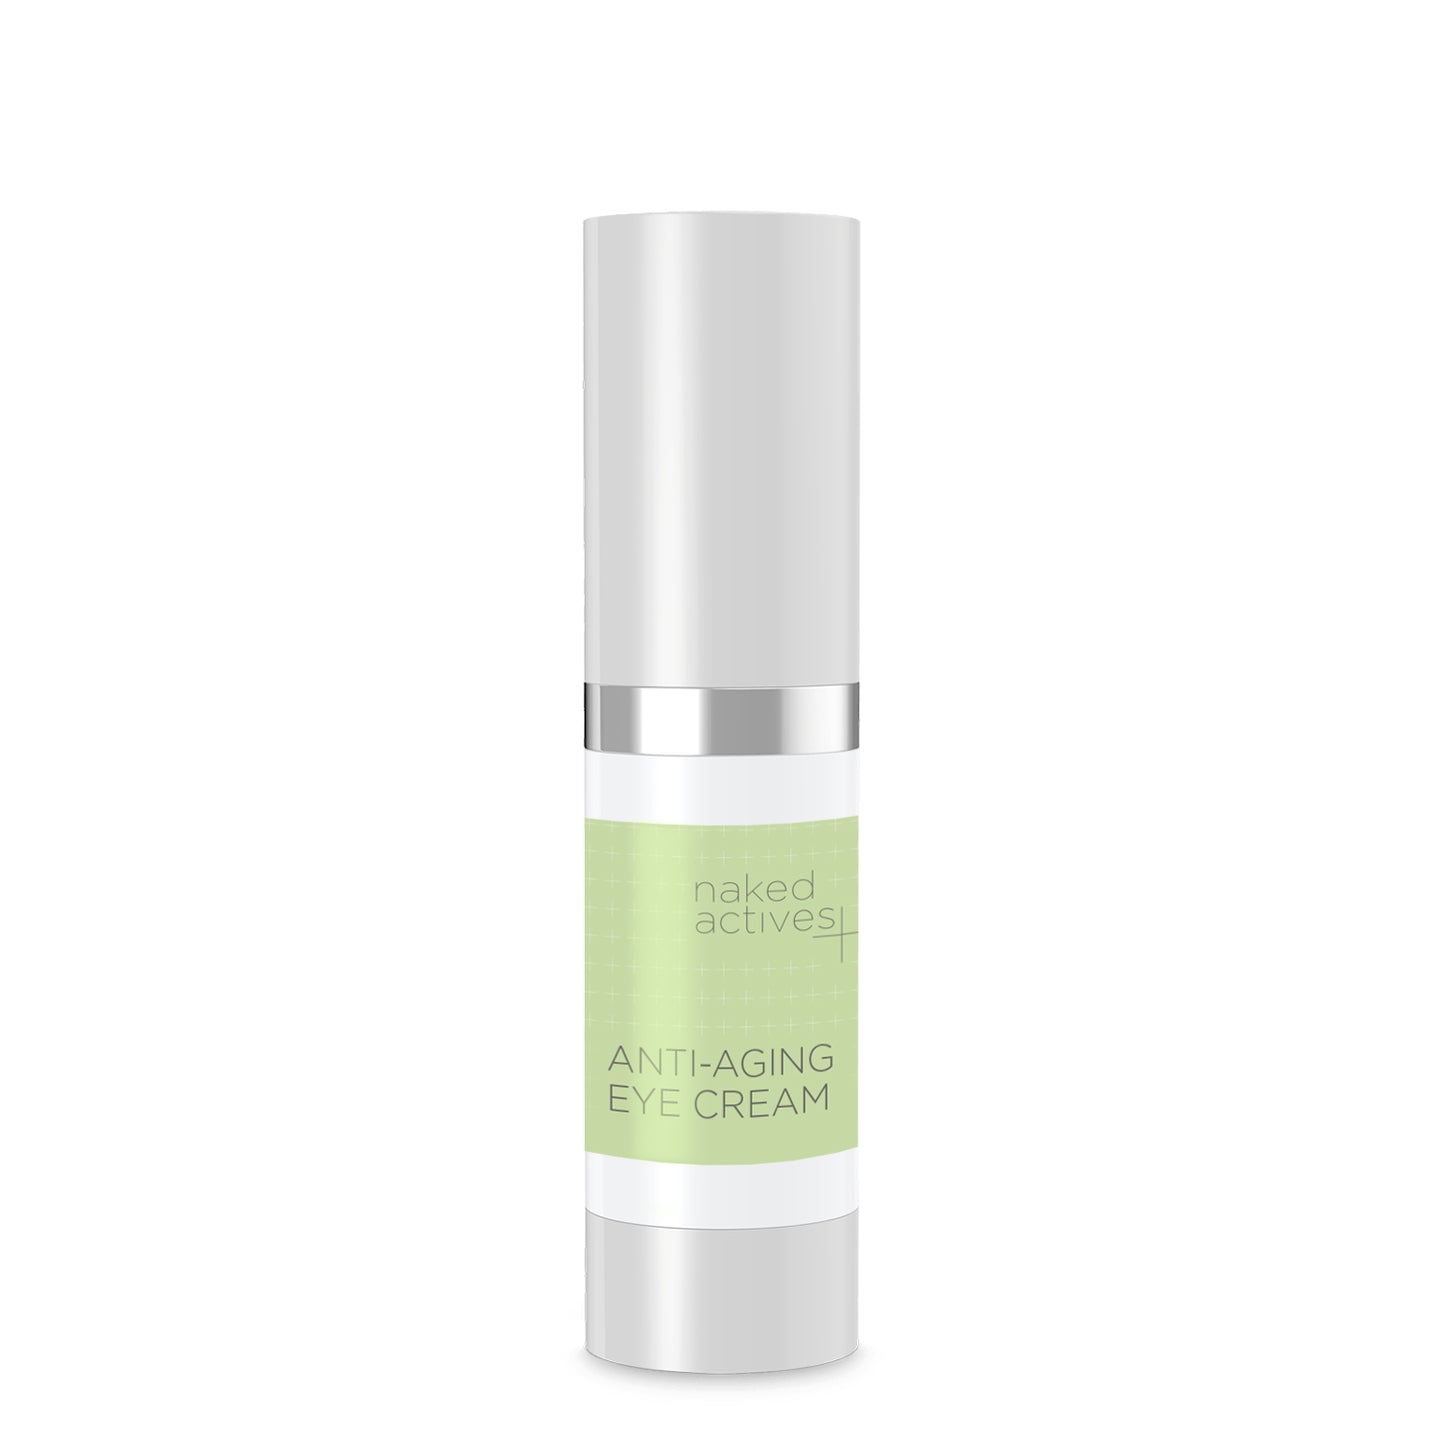 Buy Eye Cream Online - Naked Actives